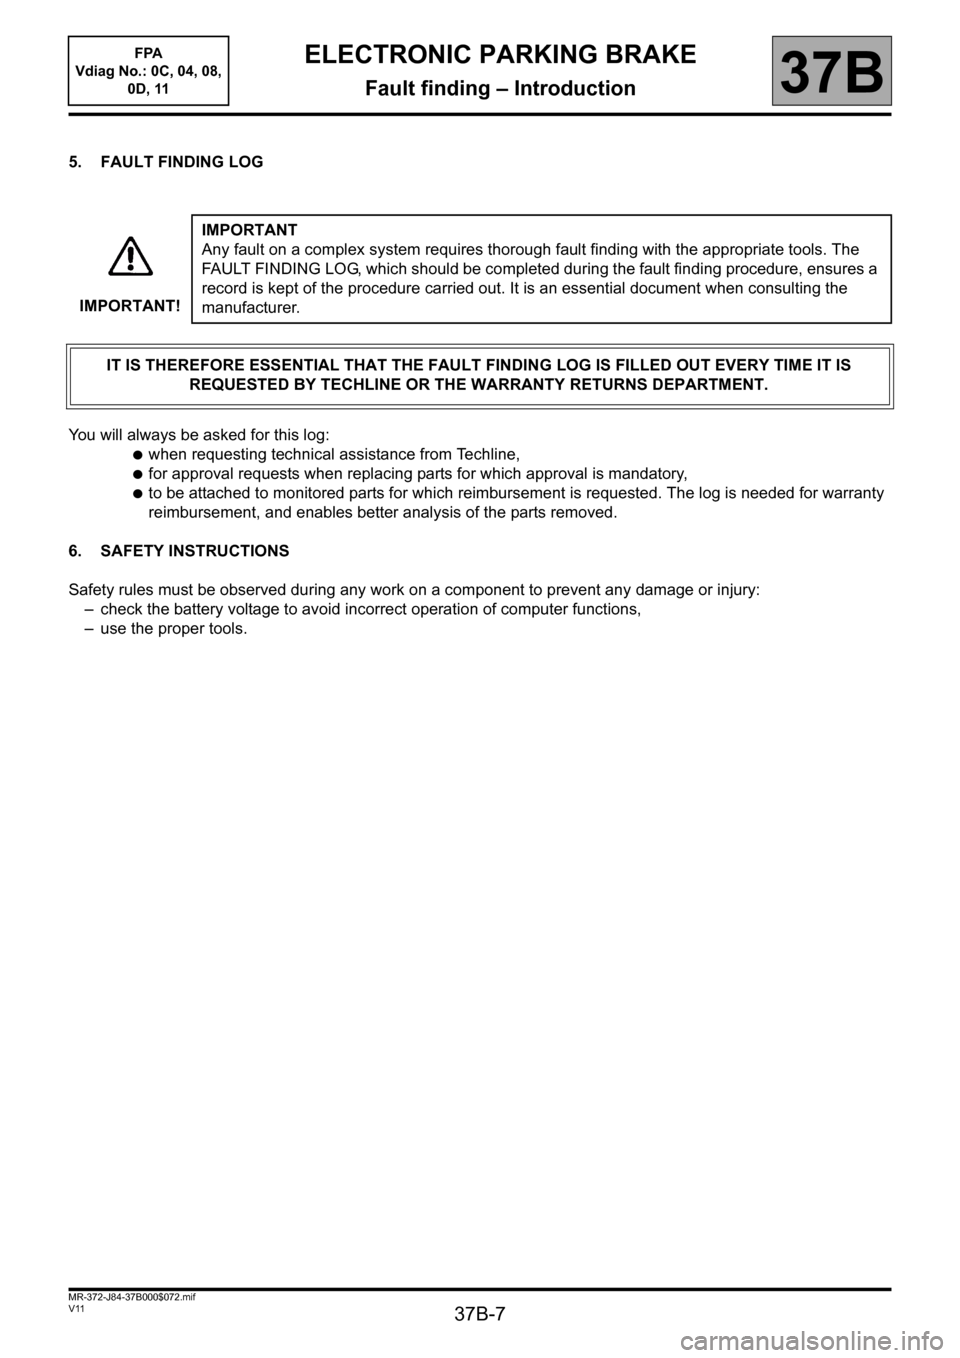 RENAULT SCENIC 2013 J95 / 3.G Electronic Parking Brake Workshop Manual, Page 7